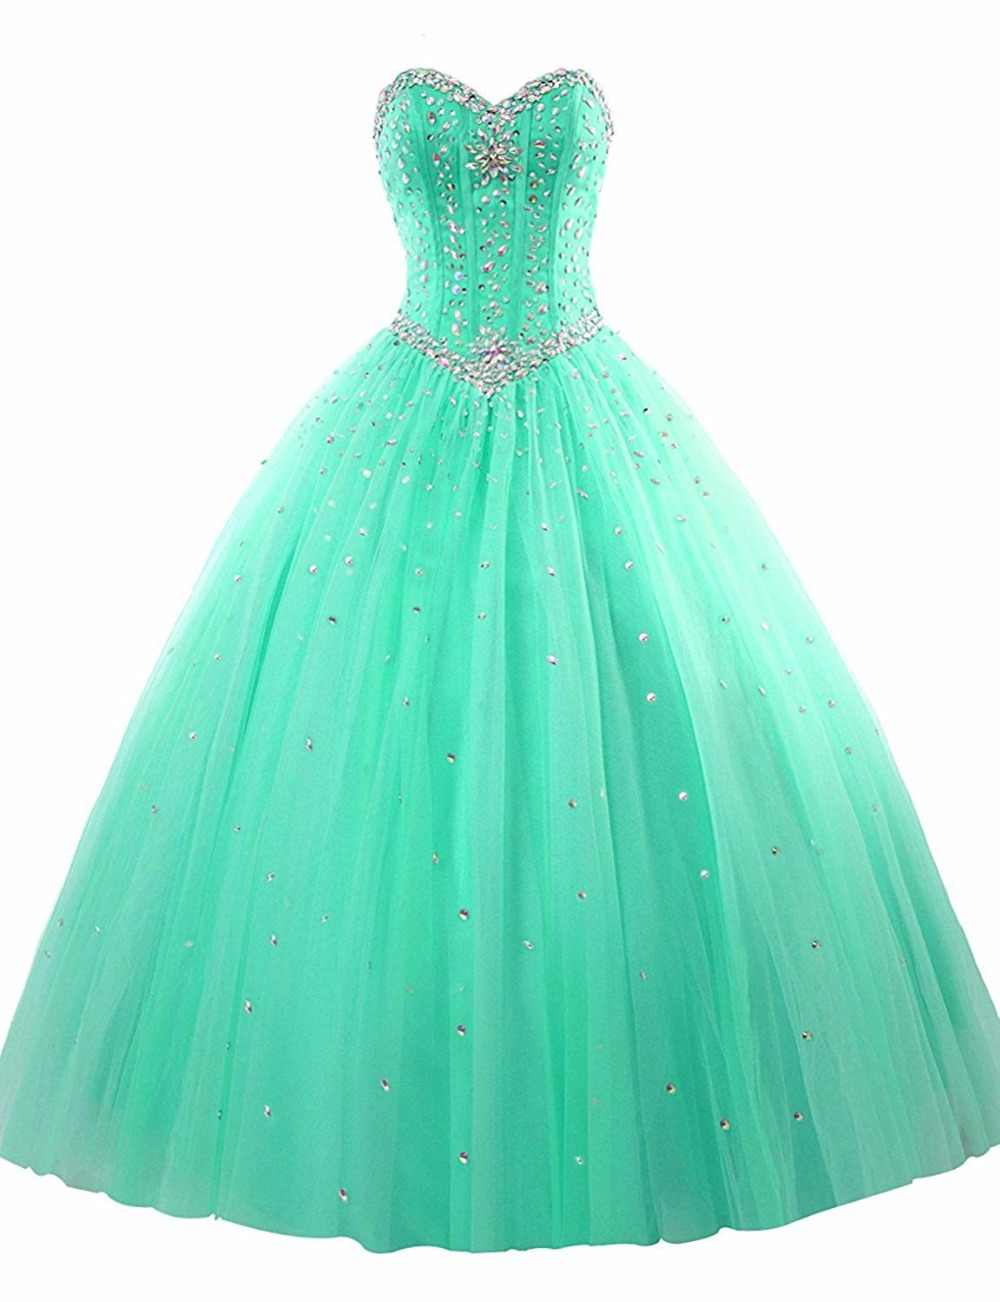 4def0657628 ... Bealegantom 2019 100% Real Photo Ball Gown Quinceanera Dresses Beaded  Lace Up Sweet 16 Dress ...